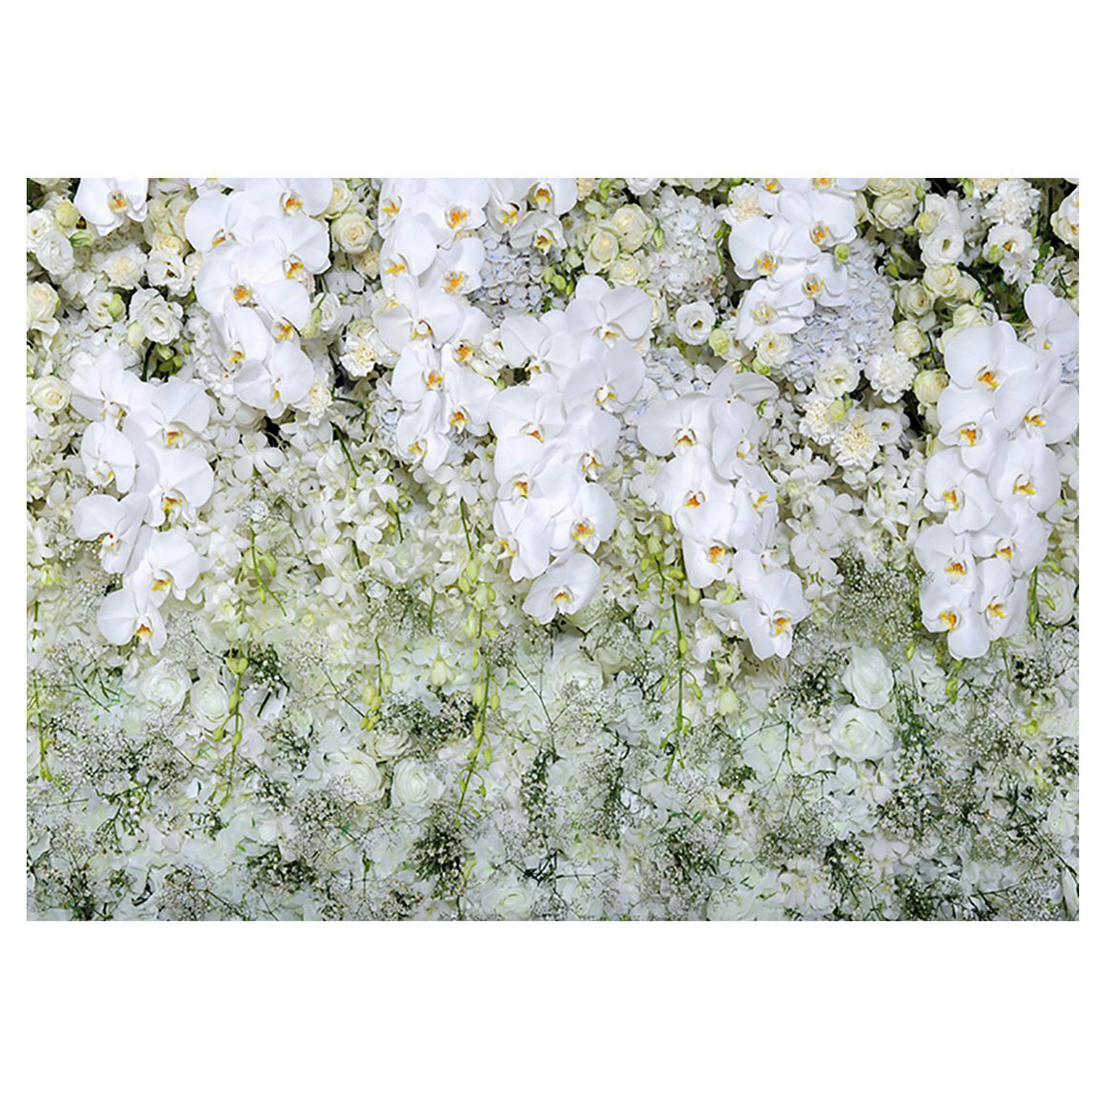 5x3ft Wedding Photo Background White Flowers Backdrops For Valentine's Day Photography Backdrop zоом 3 day white with acp excel 3